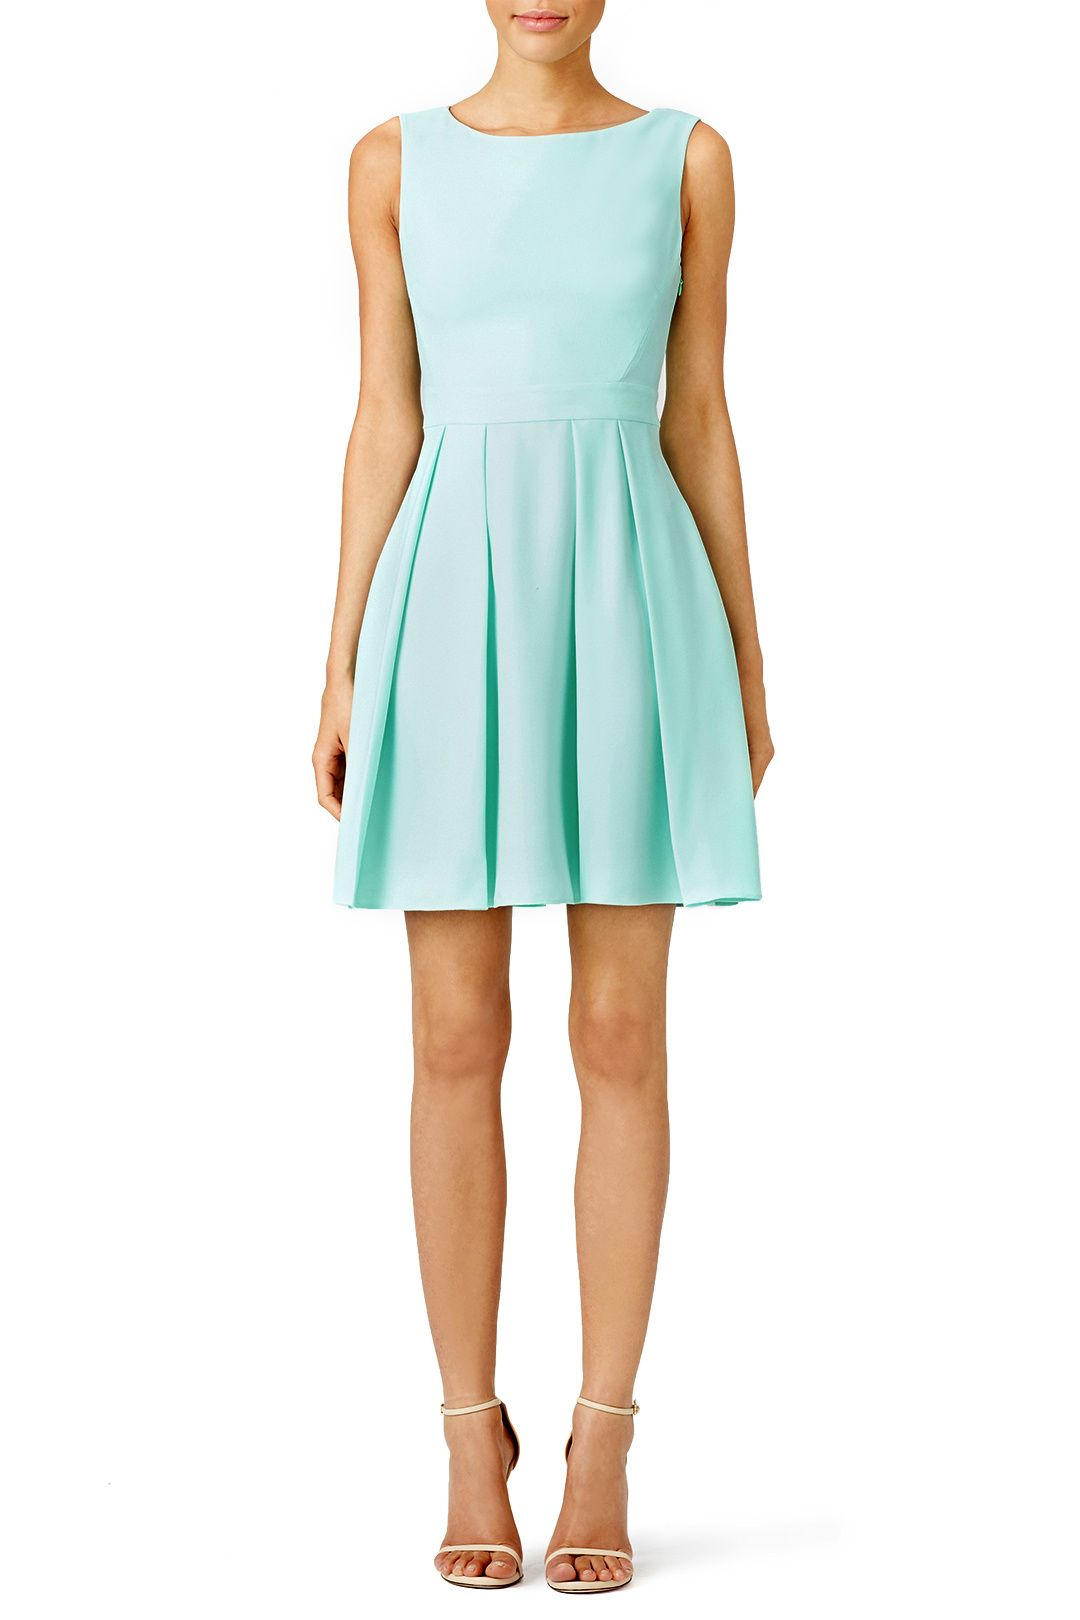 Rent Mint Bow Back Dress by kate spade new york for $70 only at Rent ...